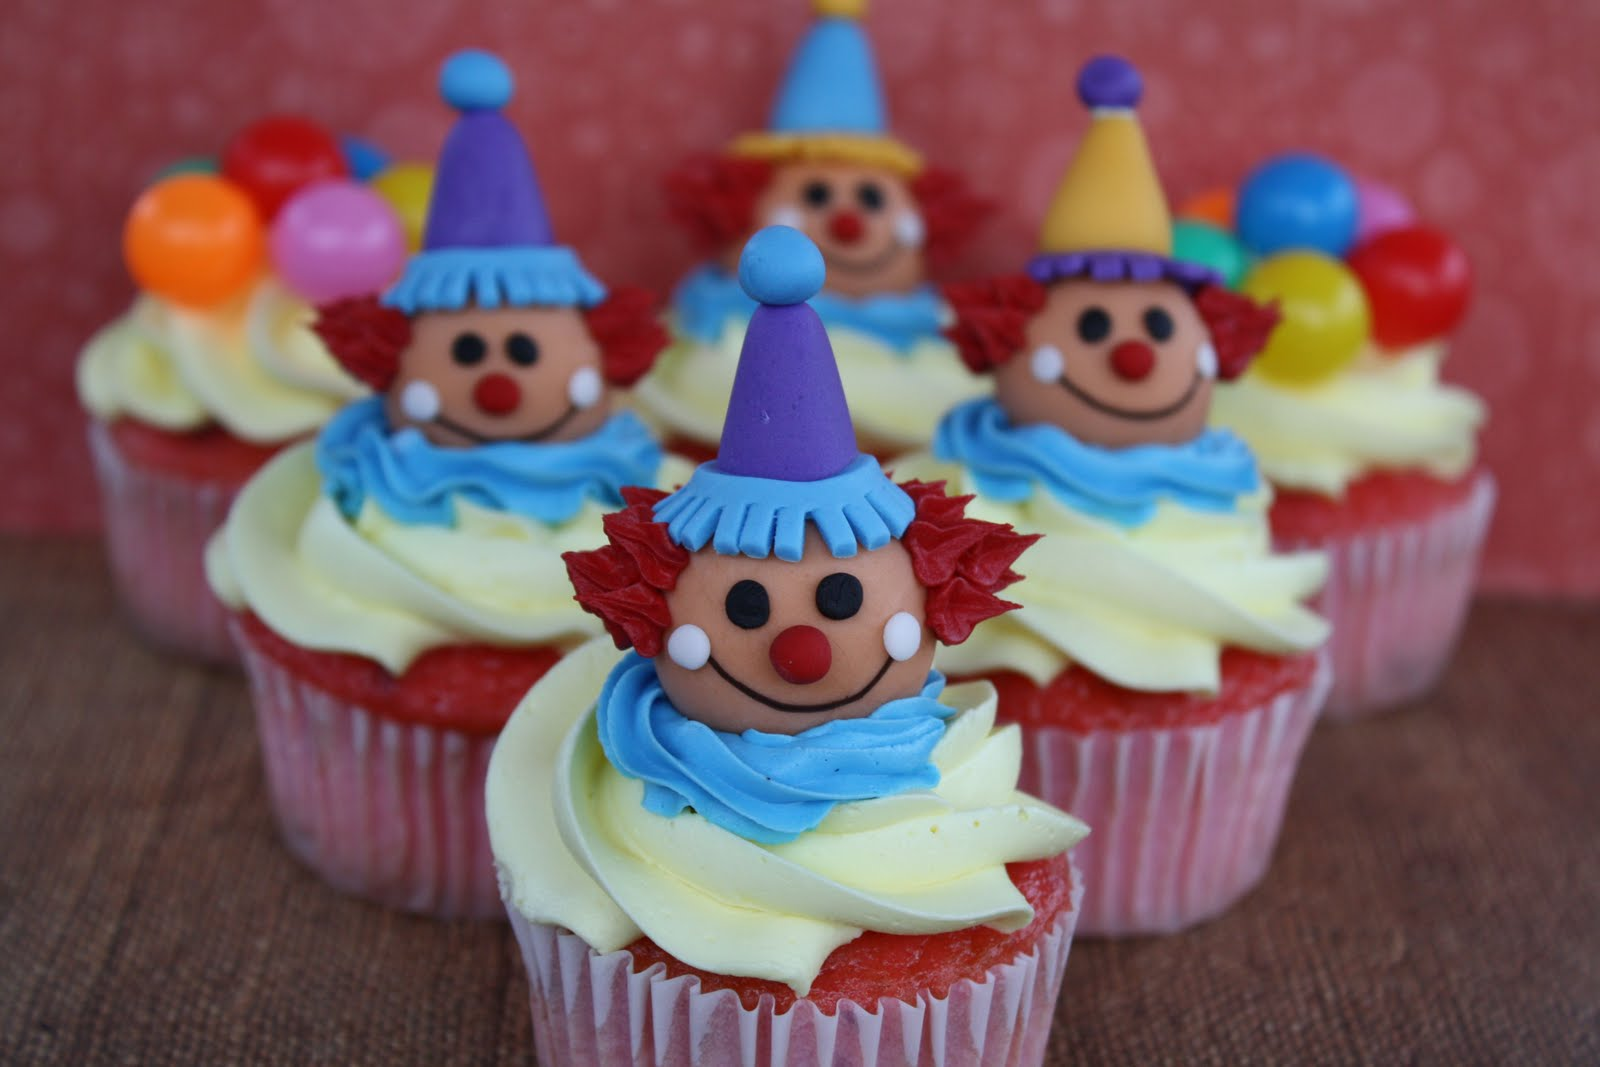 Birthday Cake With Clowns Made Out Of Icing And Balloons